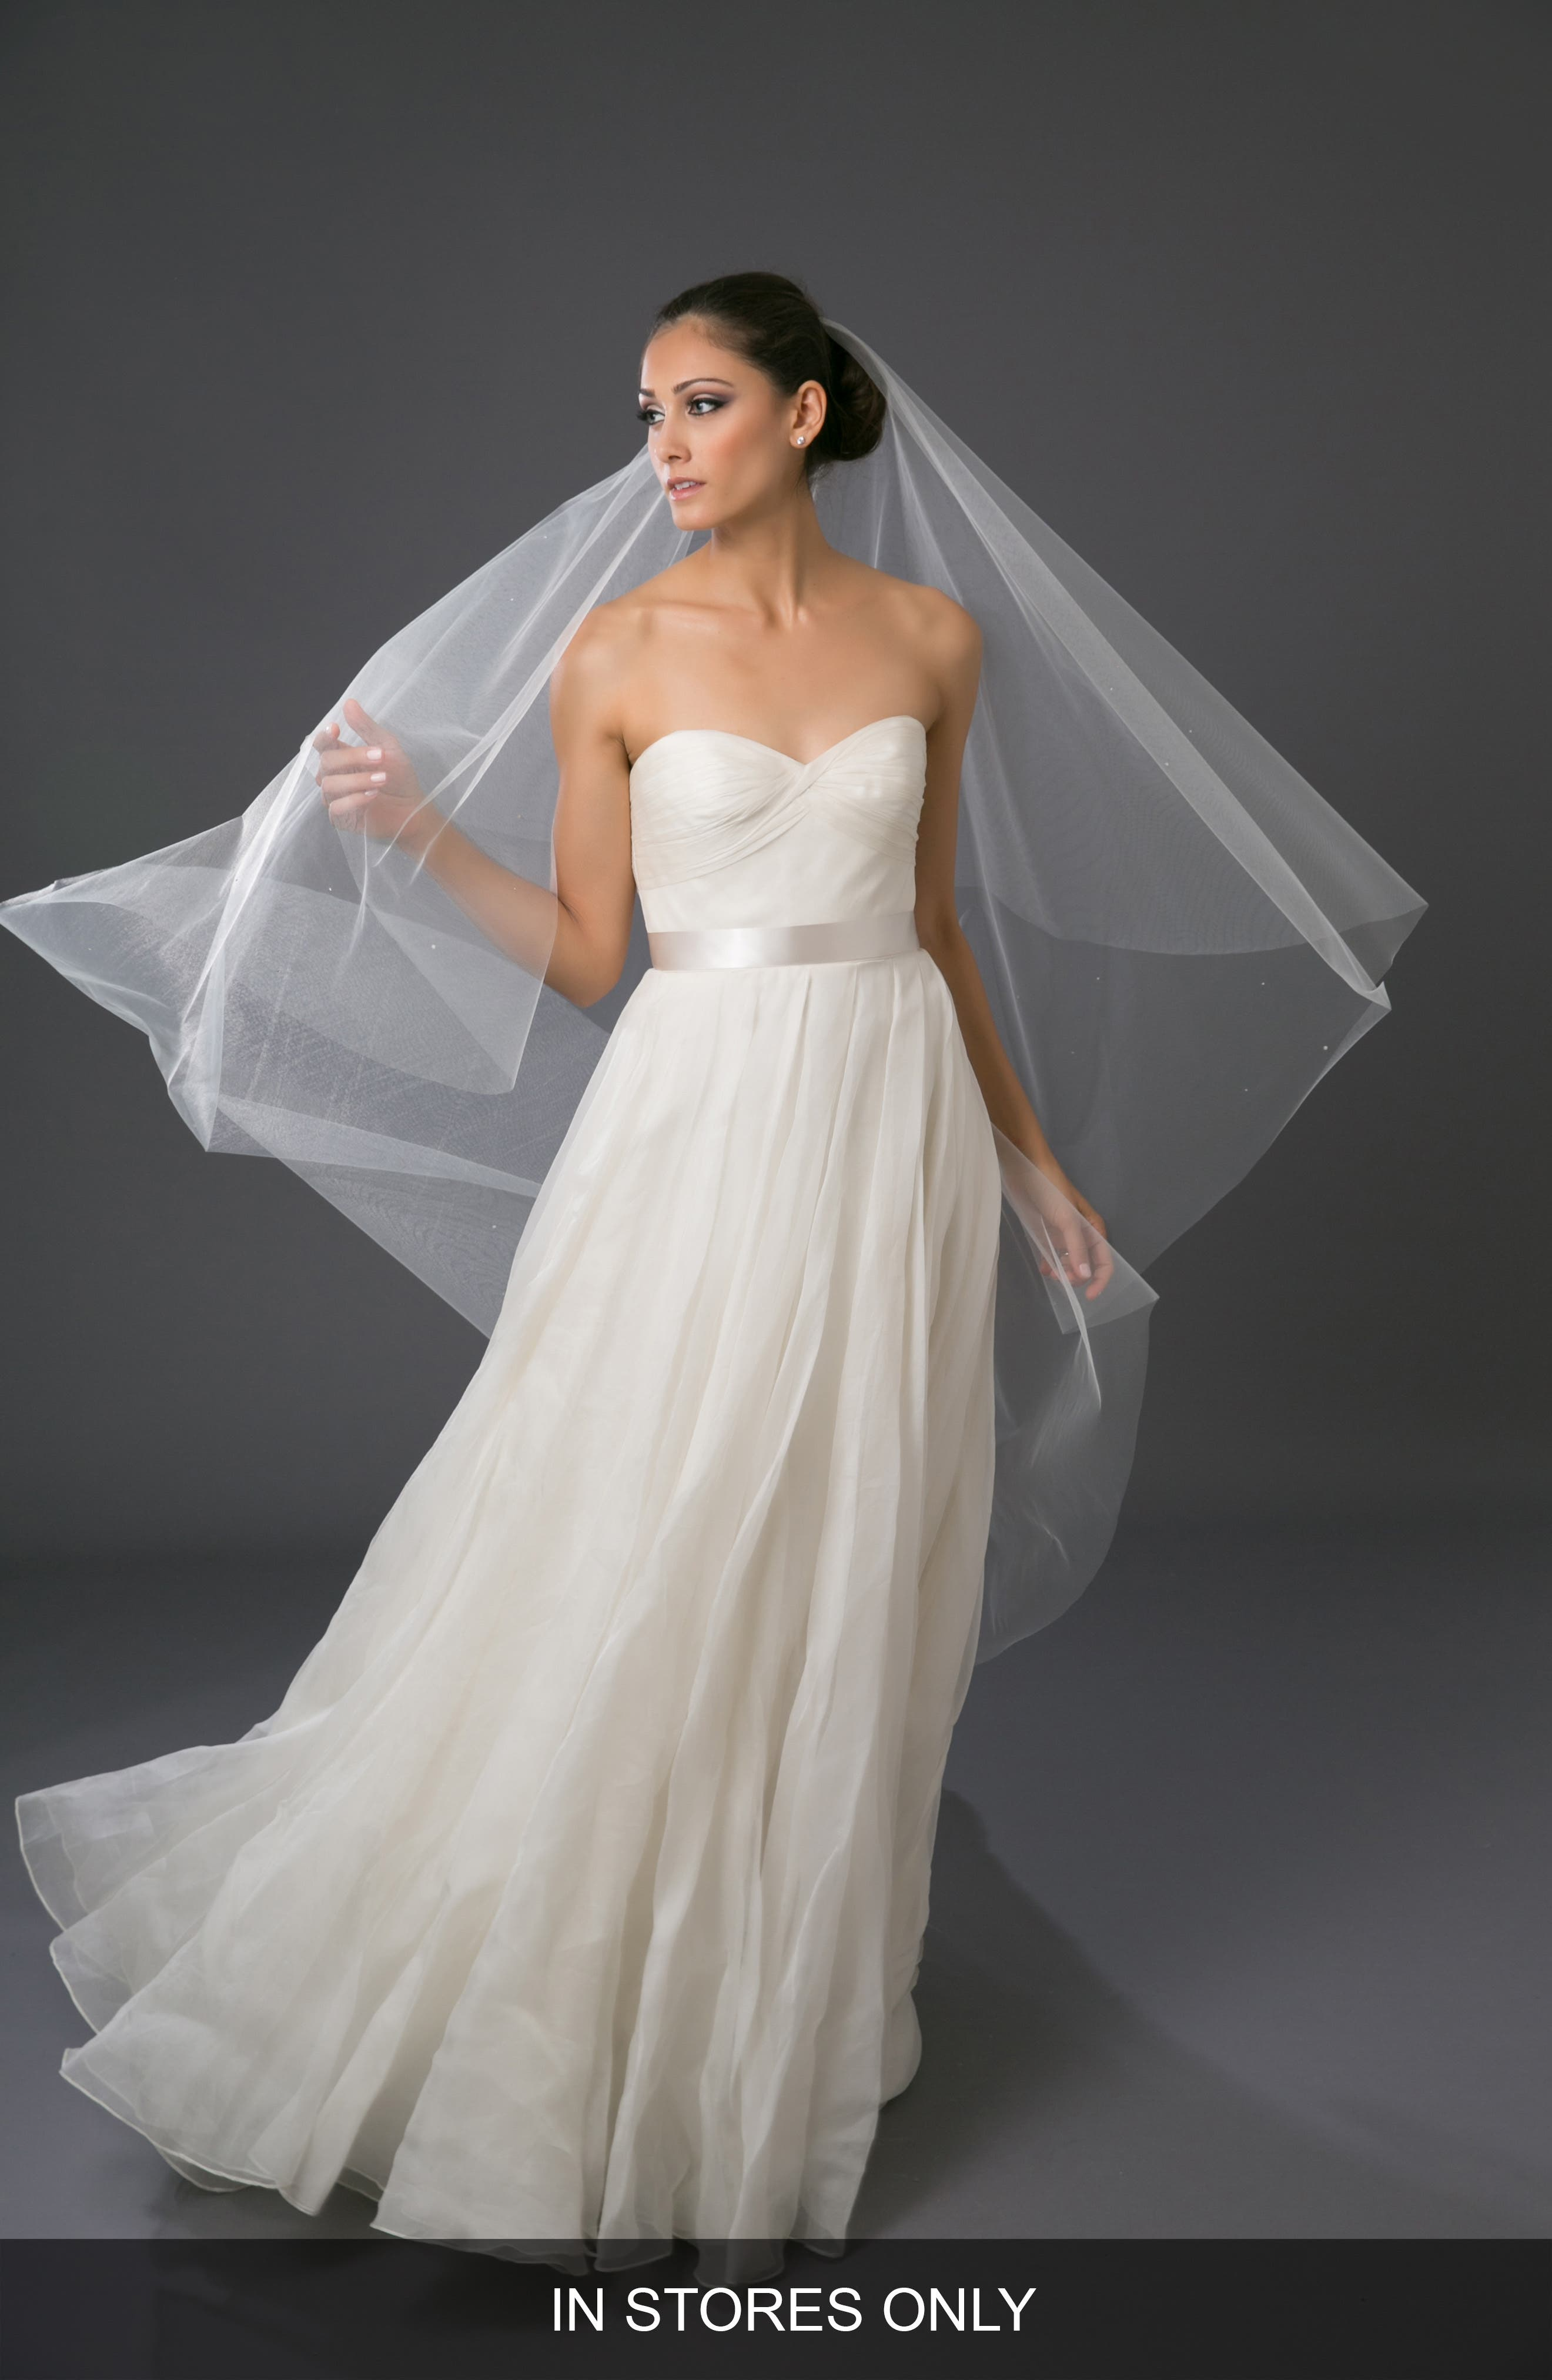 'Chakra' Circle Cut Waltz Length Veil,                             Alternate thumbnail 6, color,                             LIGHT IVORY